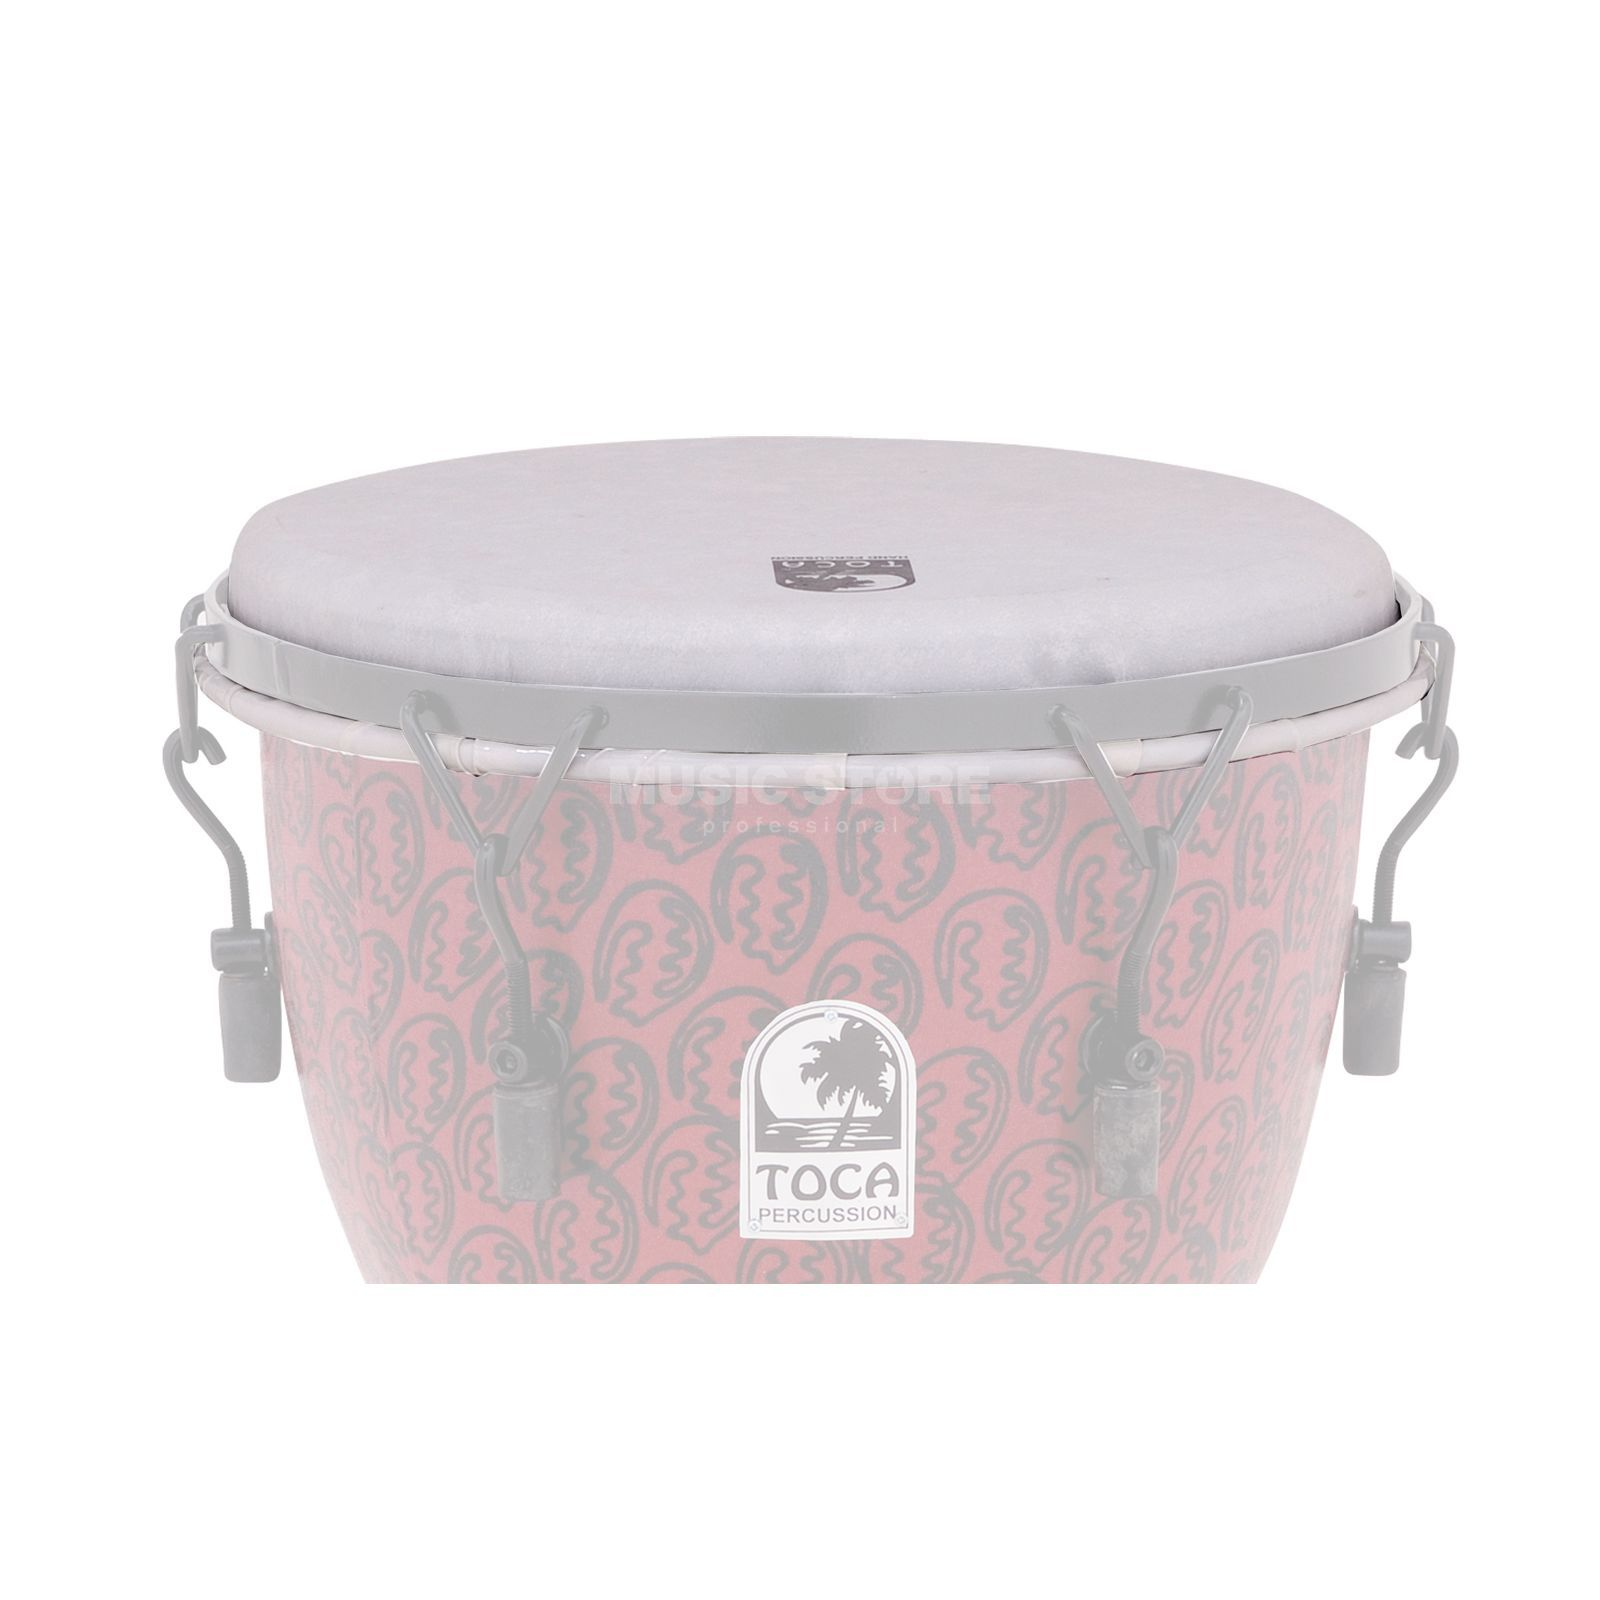 "Toca Percussion Djembe Head 12"", f. Freestyle Djembes TF2DM Product Image"